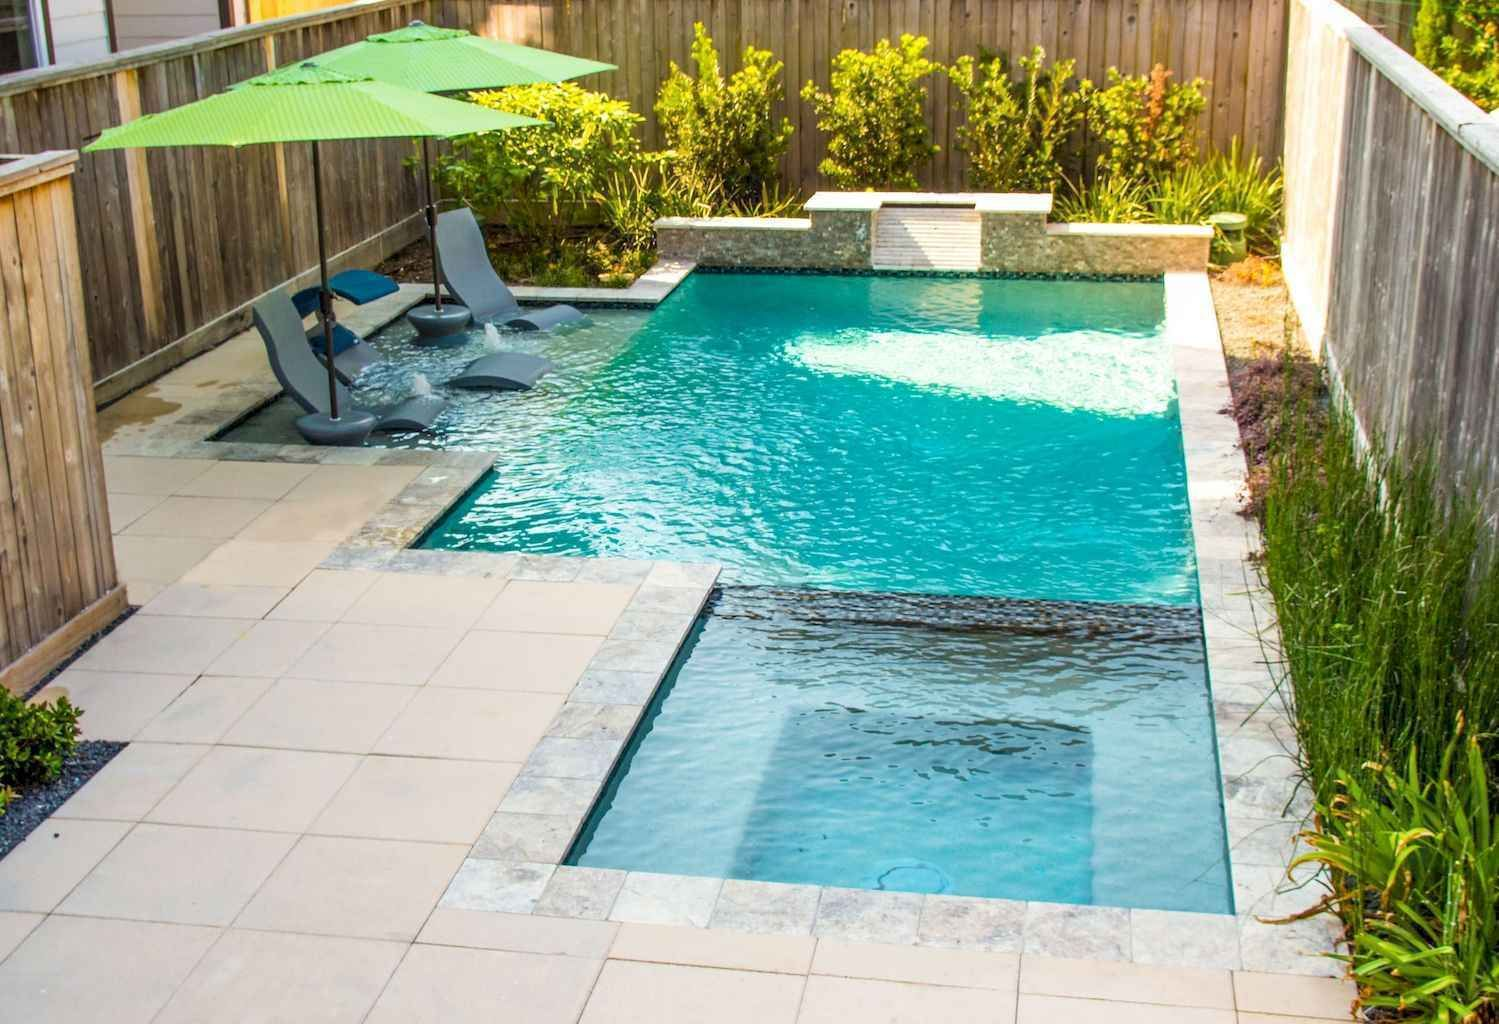 Small Backyard Swimming Pool Ideas And Design 30 Backyard Pool Landscaping Small Backyard Pools Swimming Pool Prices